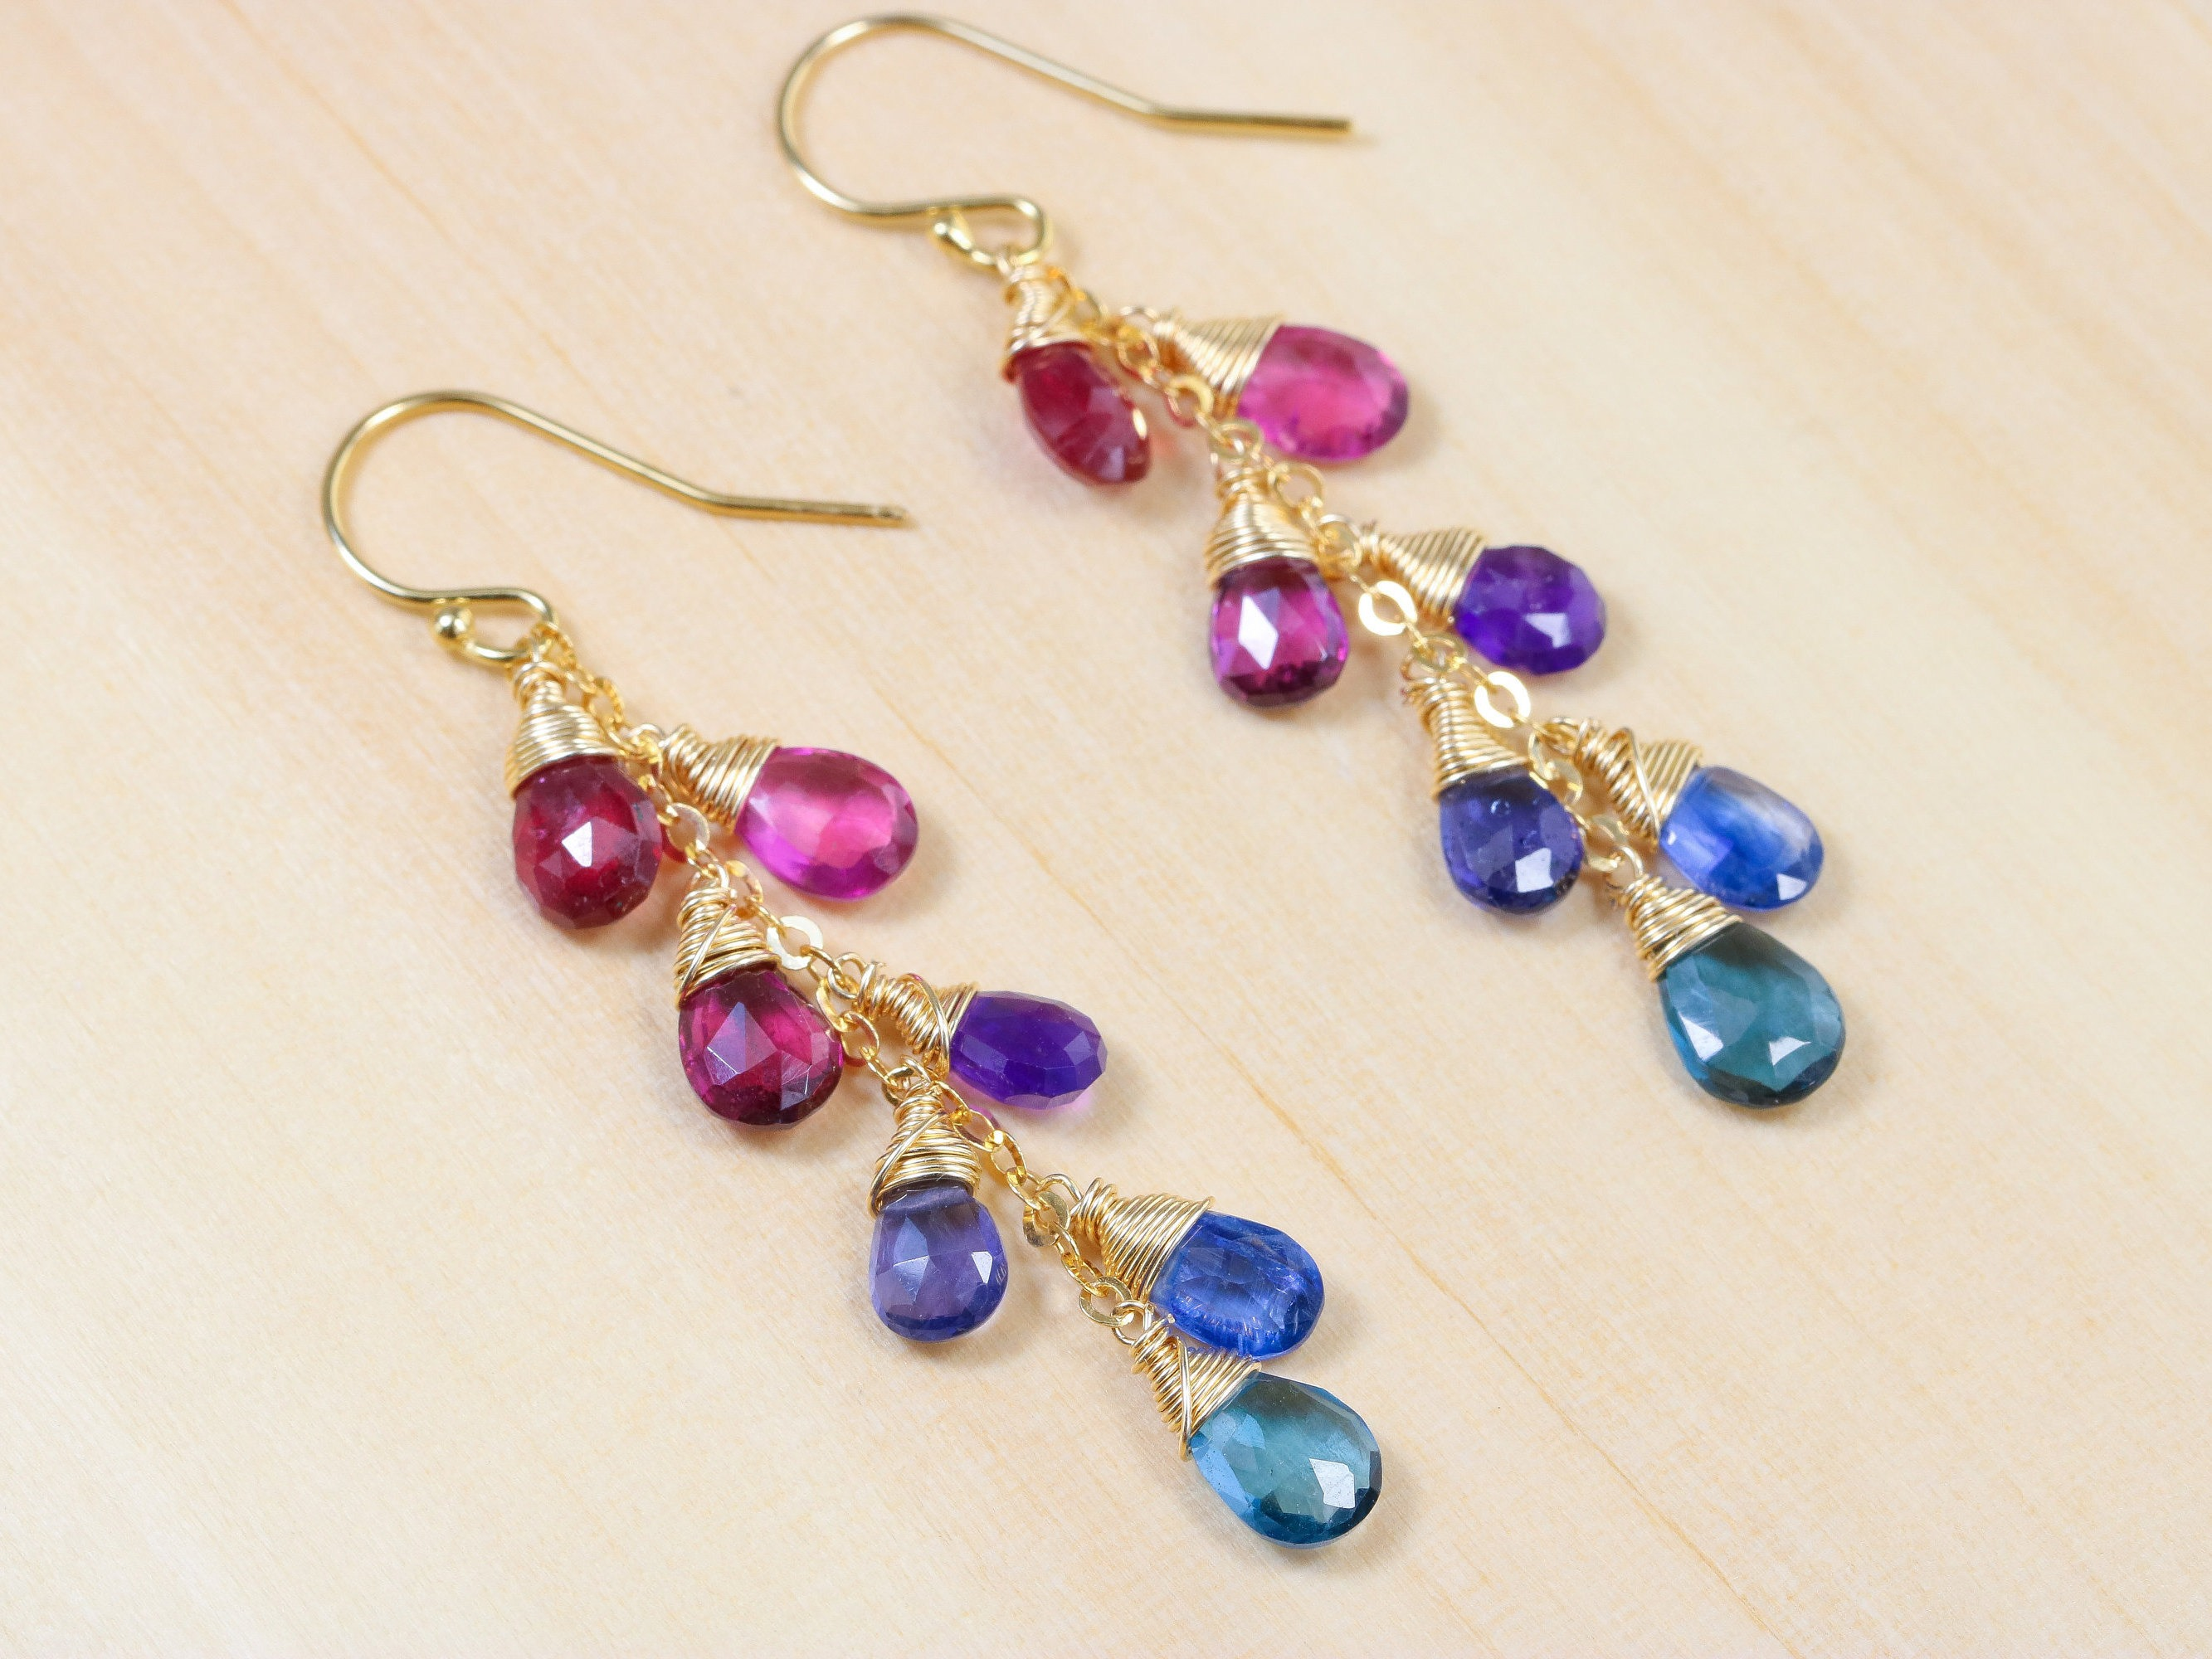 rainbow polly wales fan jewelry lyst sapphire earrings gallery pinched gold in